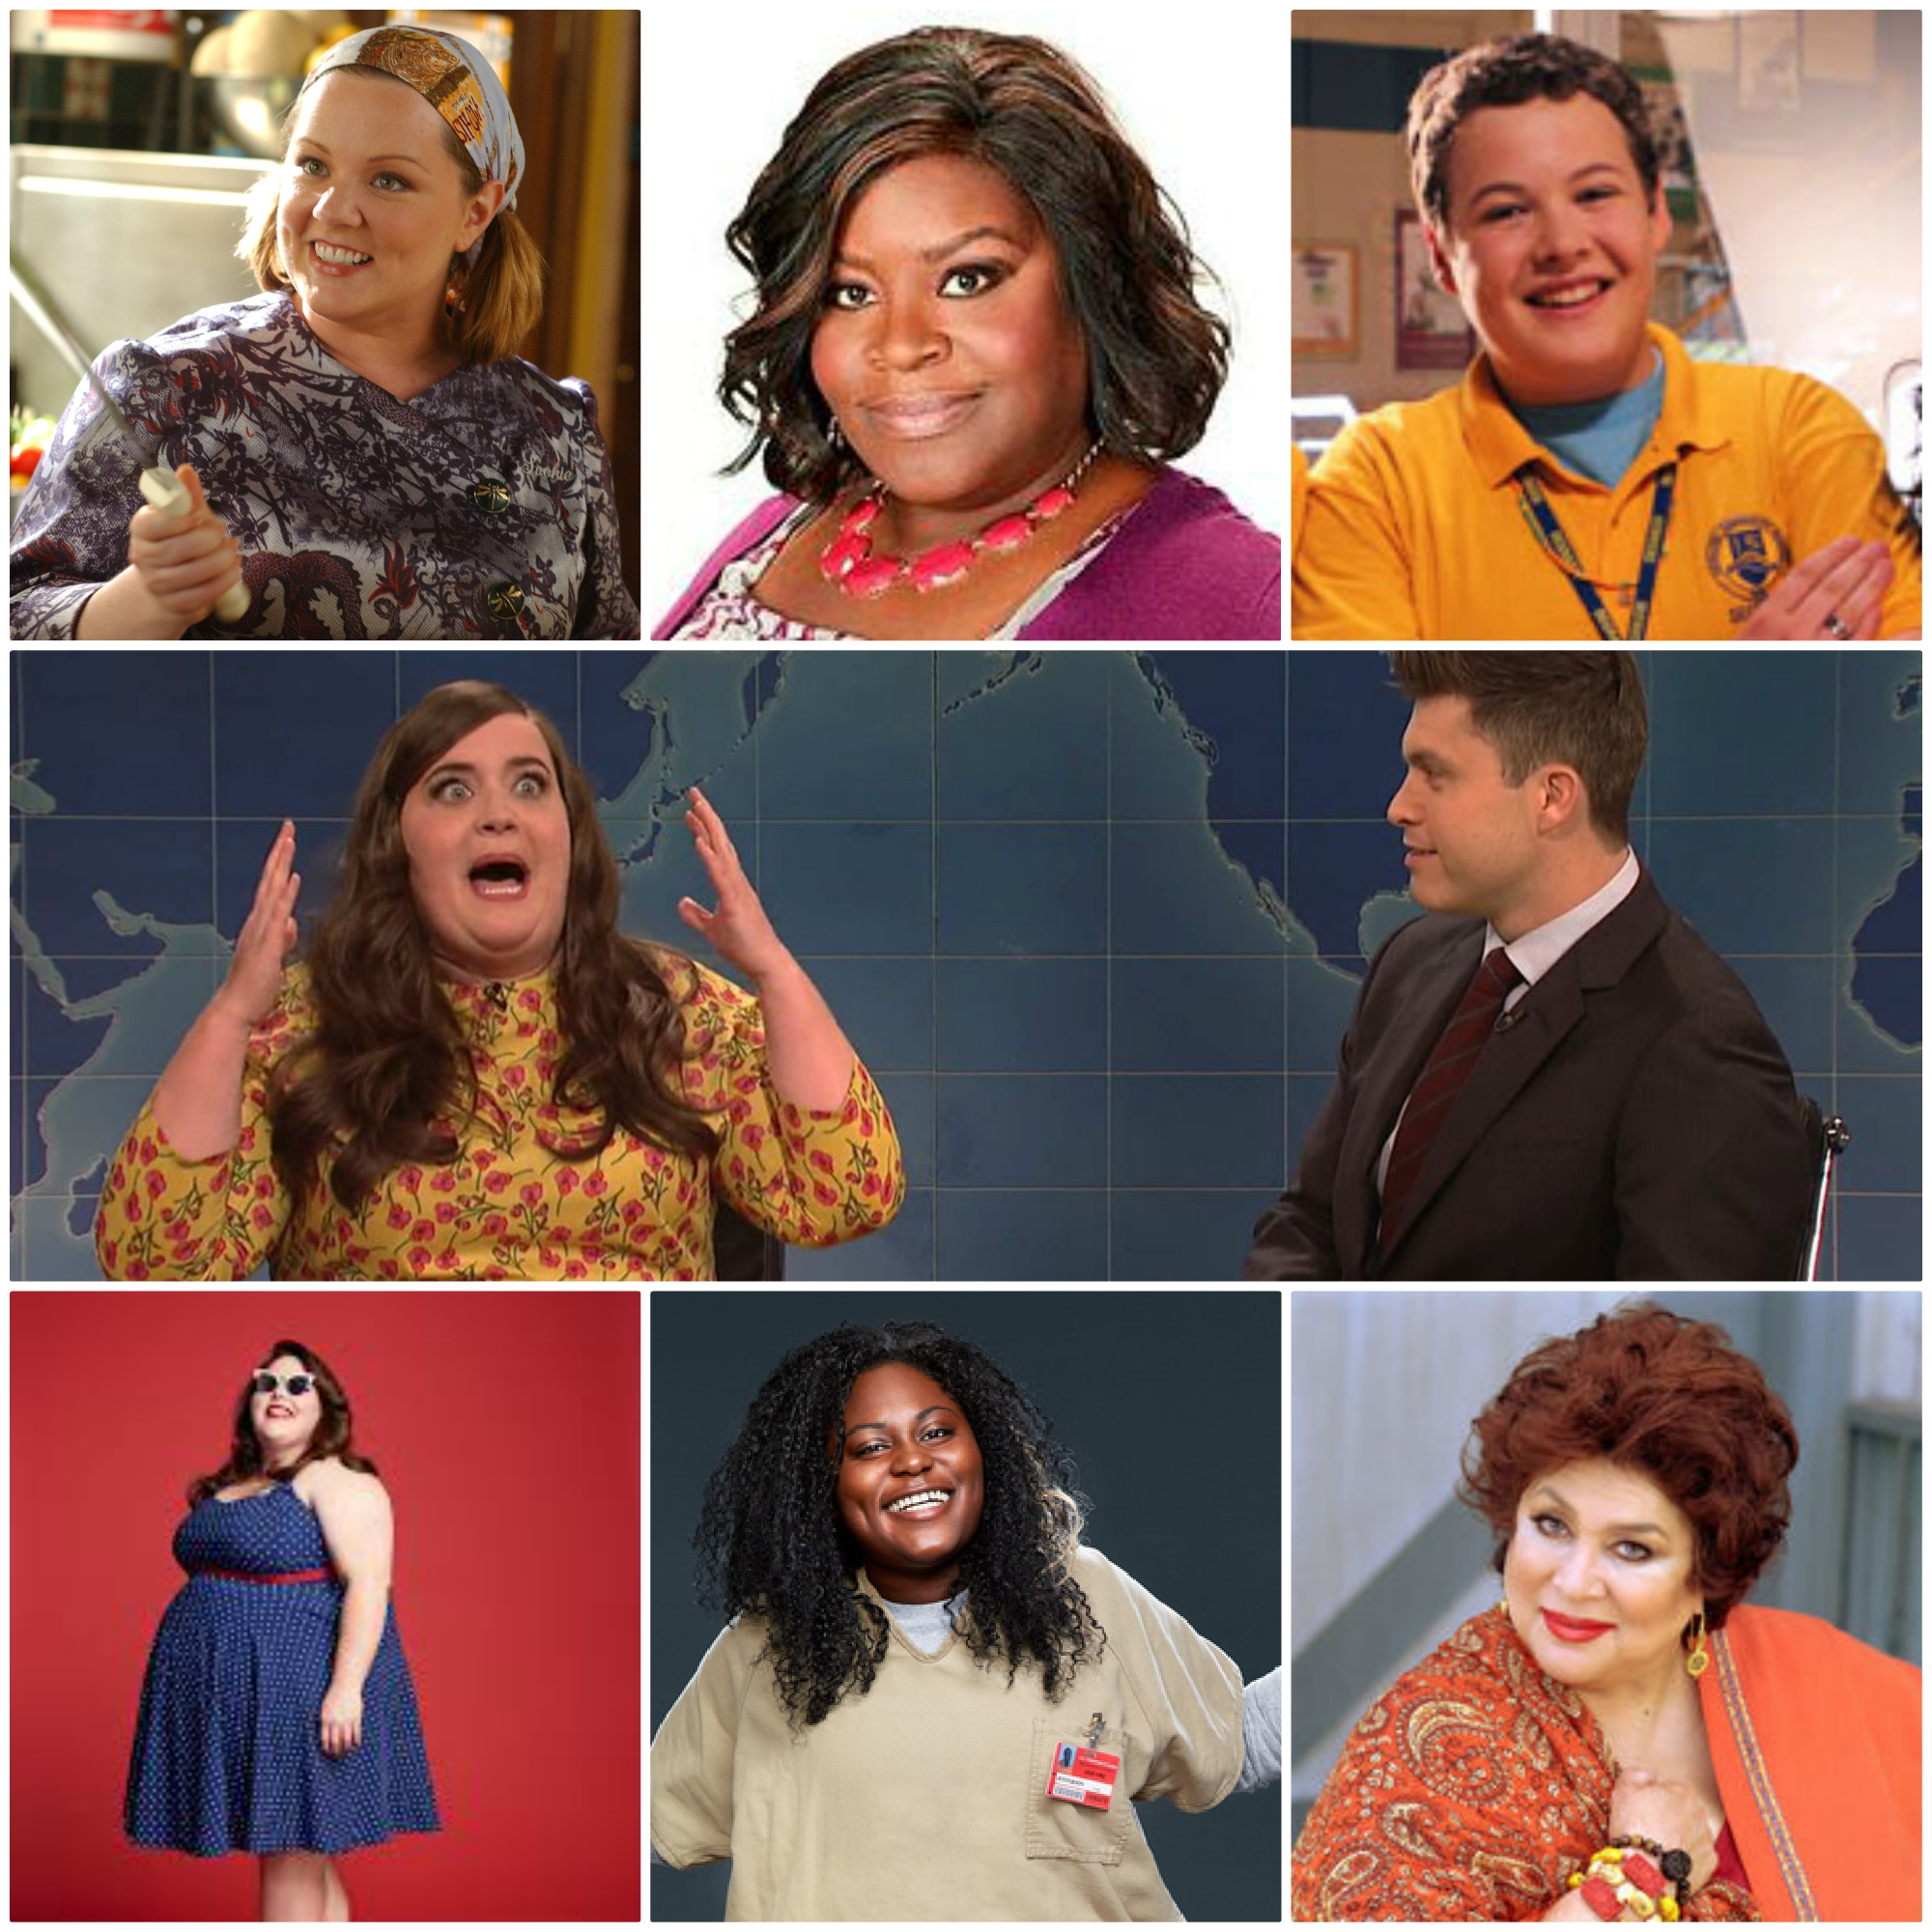 7 Plus Size TV Characters That Changed the Game – Penny Darling